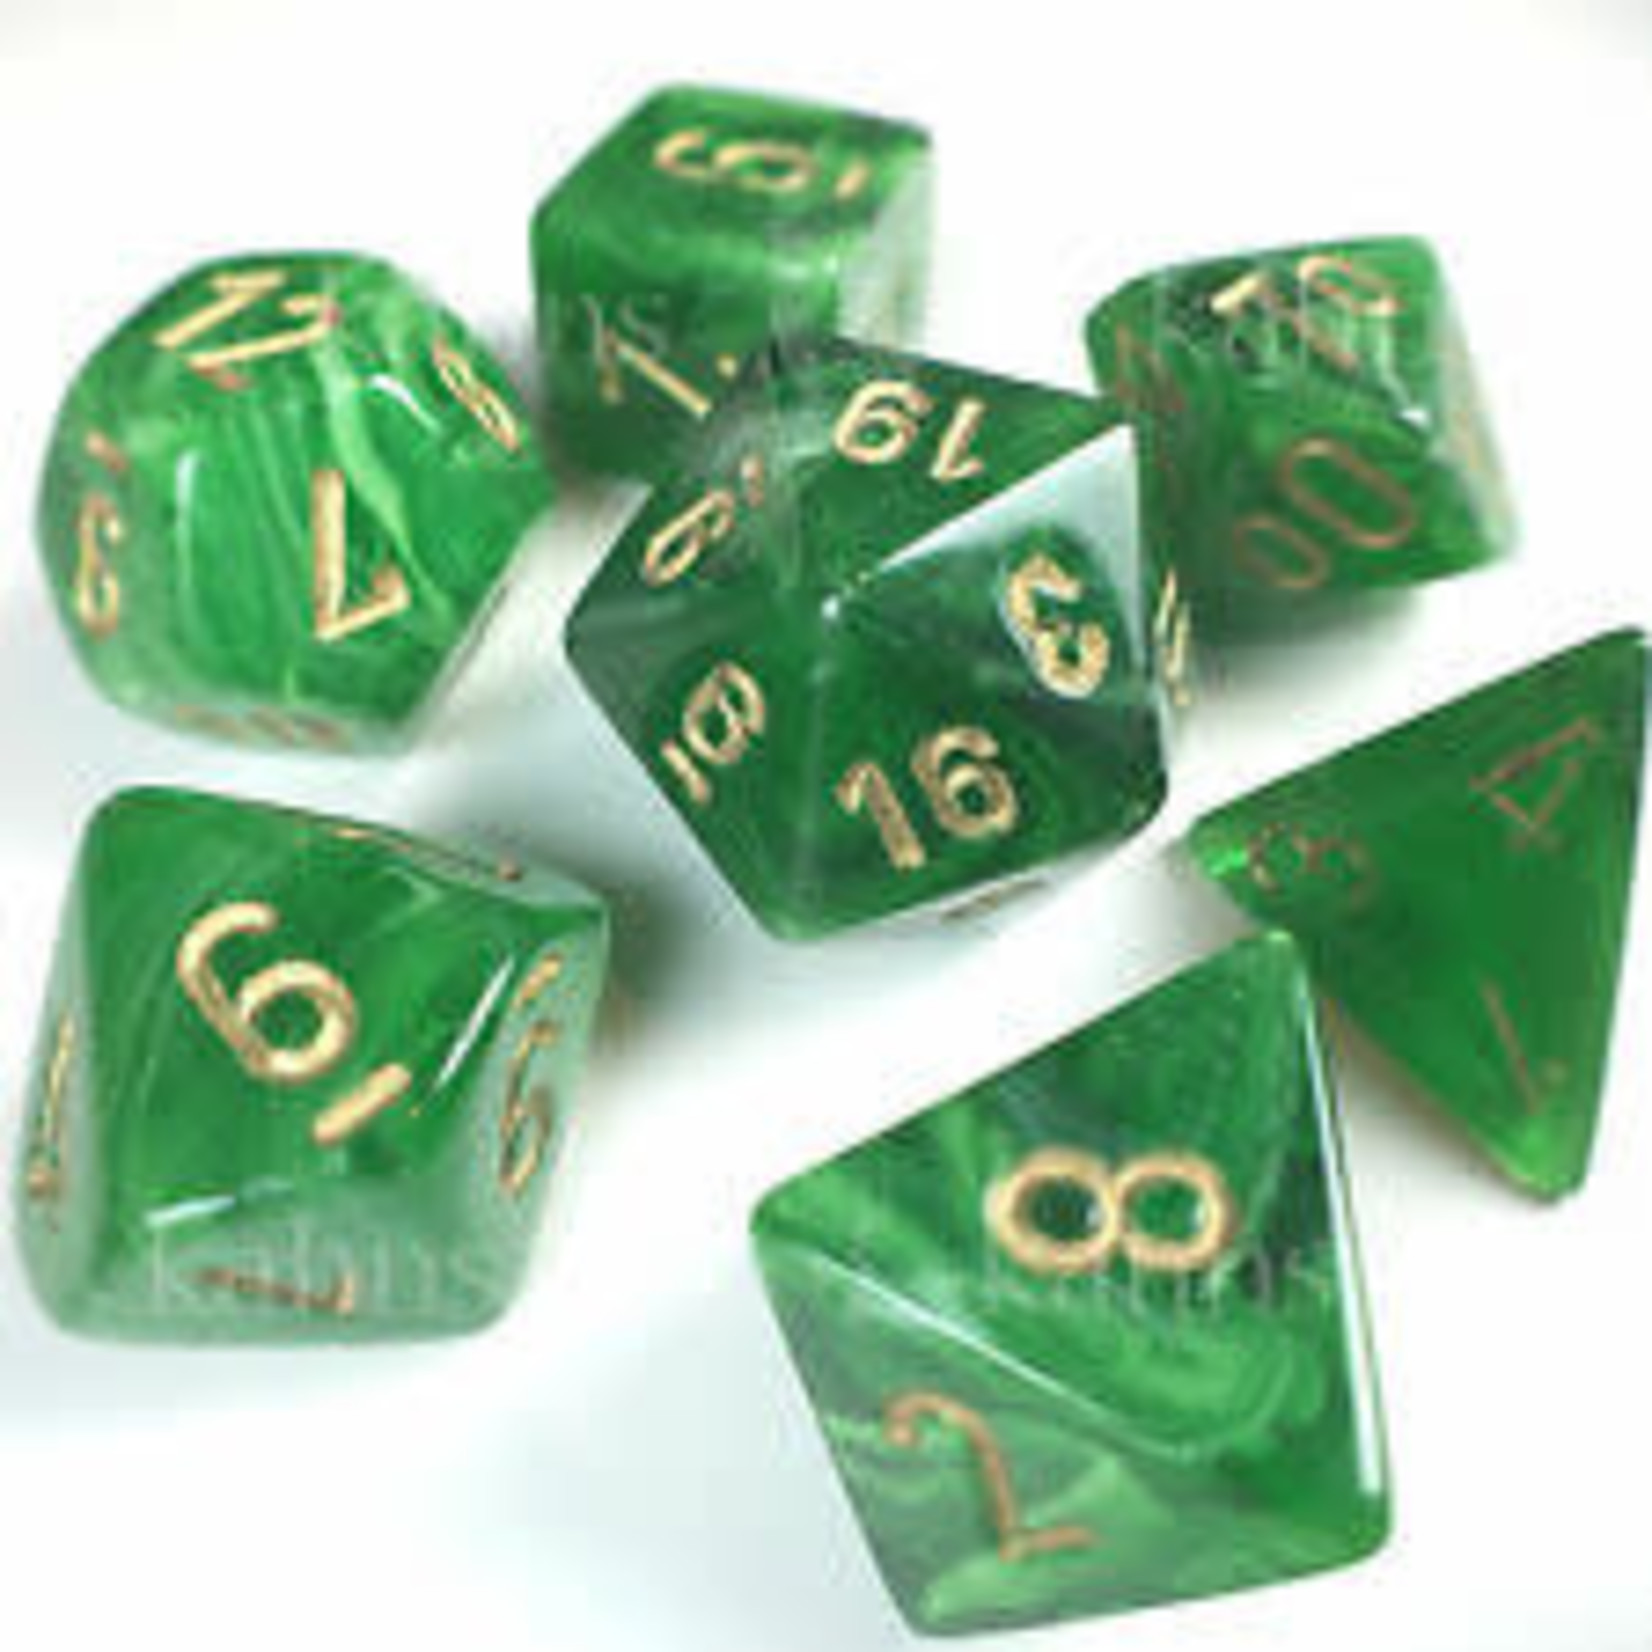 Chessex Dice: 7-Set Cube Vortex Green with Gold Numbers (Chessex)